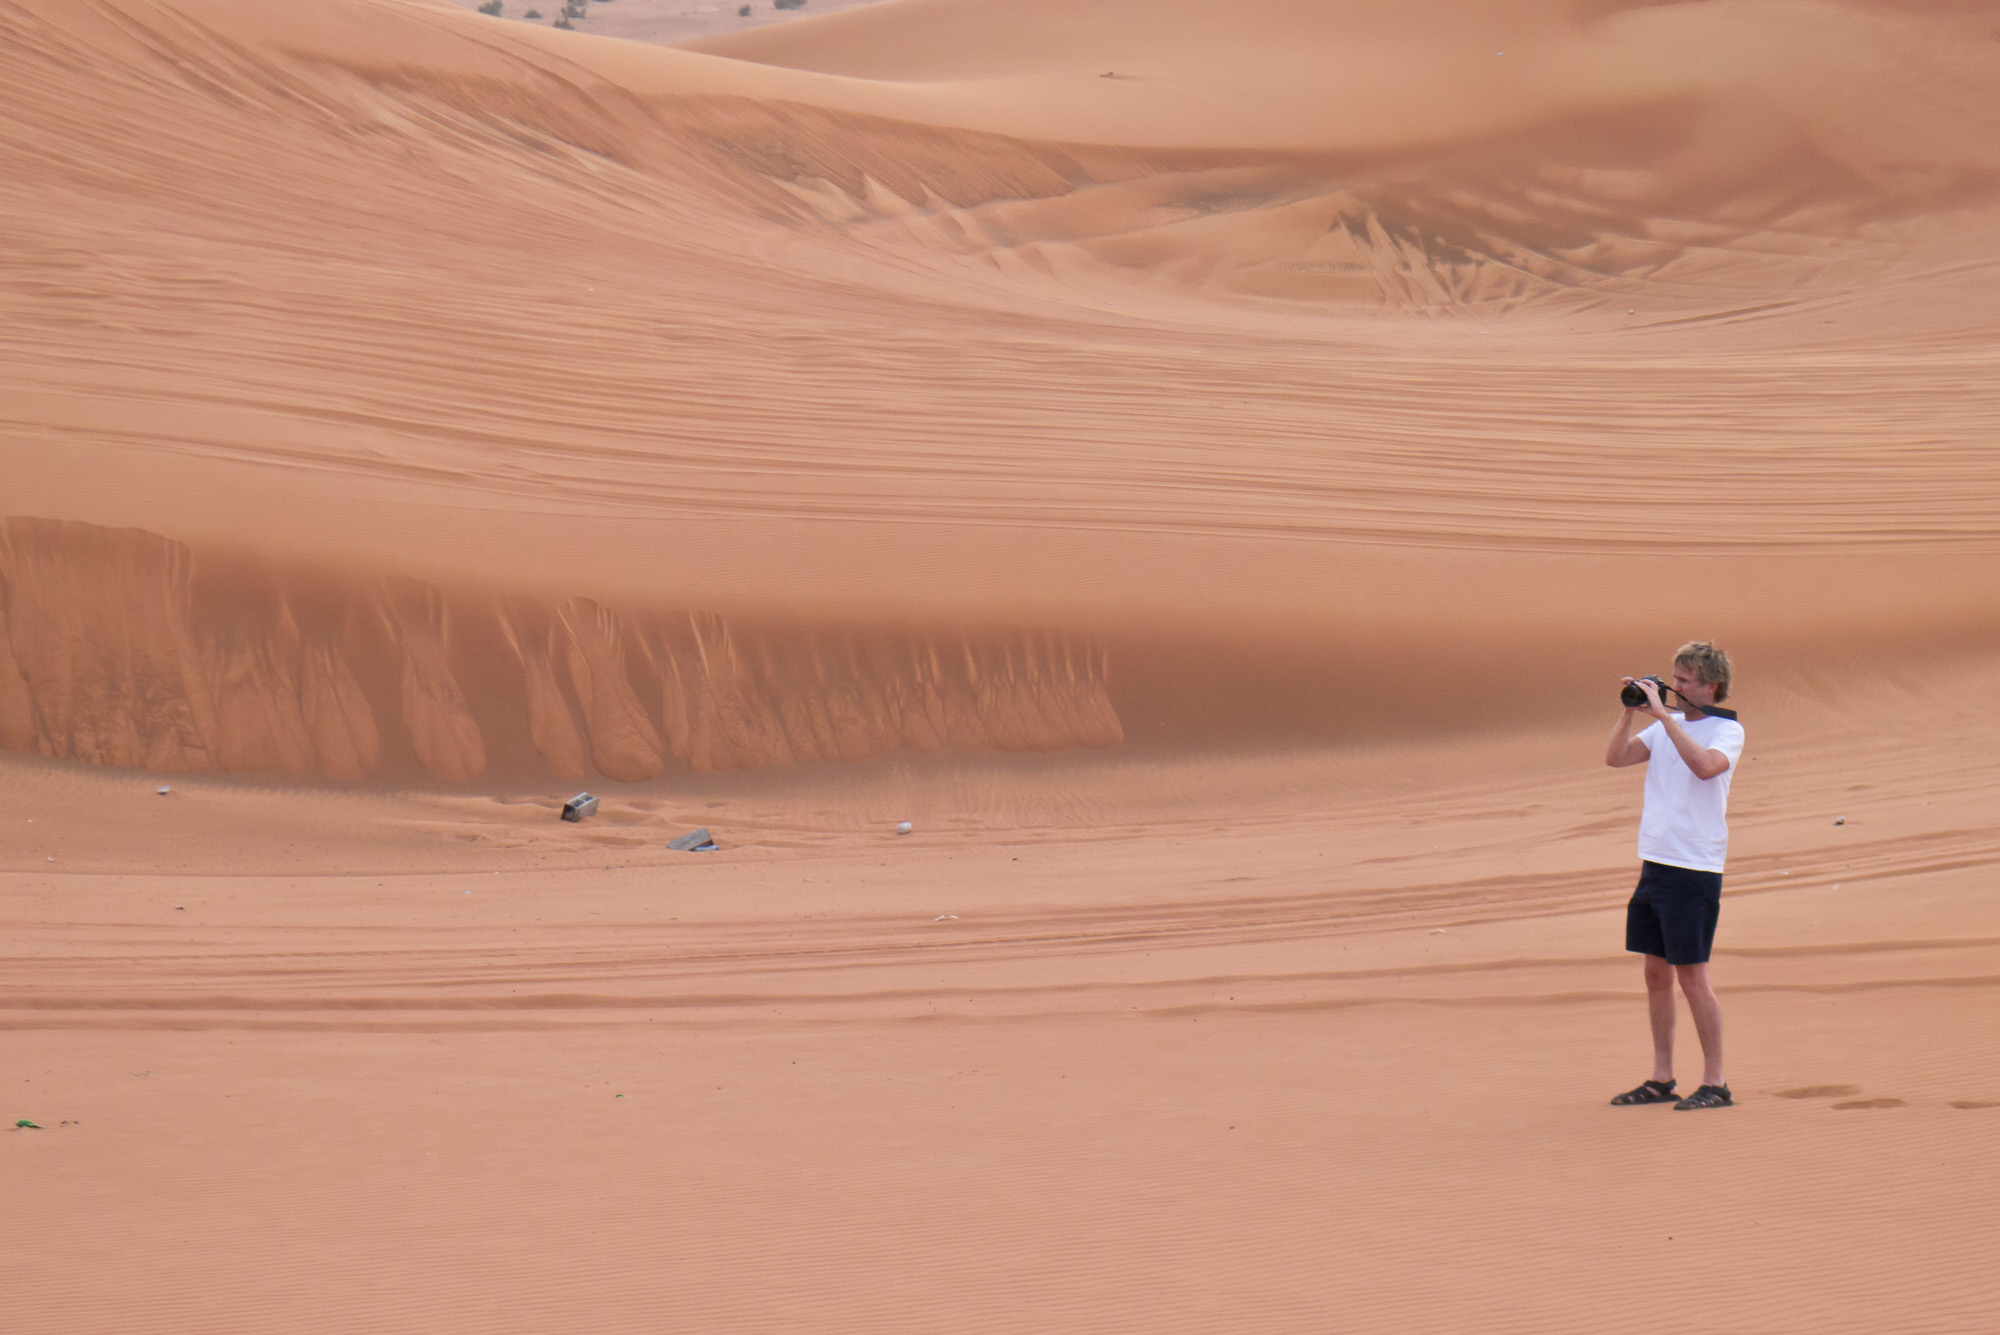 On the dunes, about an hour outside central Dubai